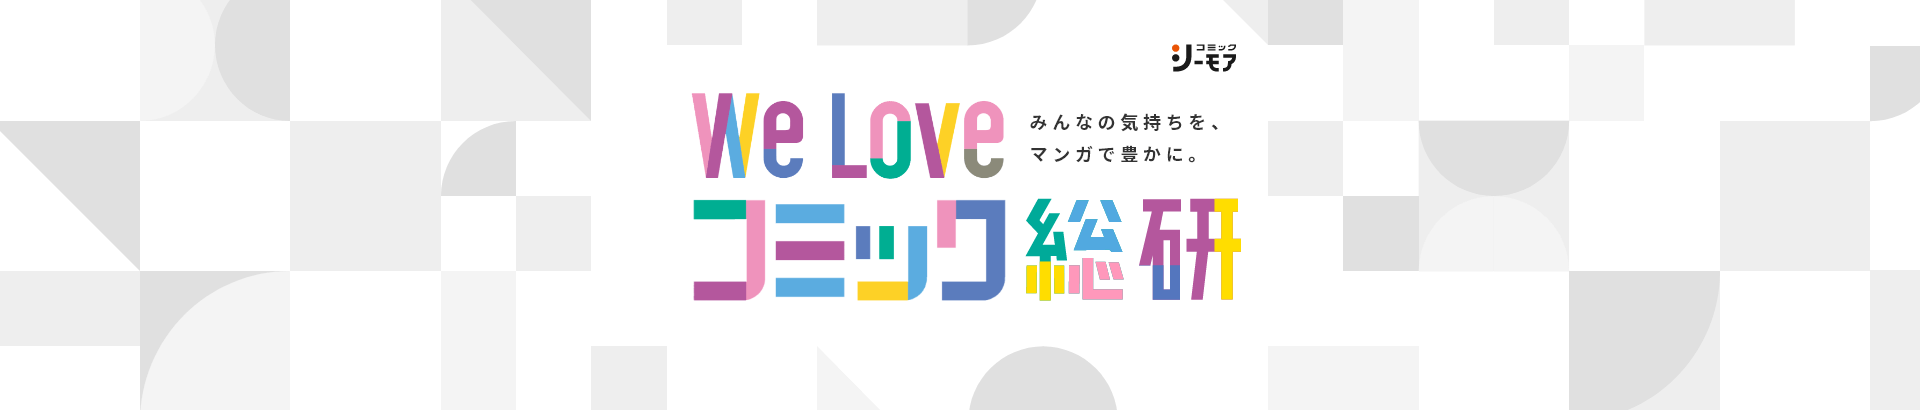 We Love コミック